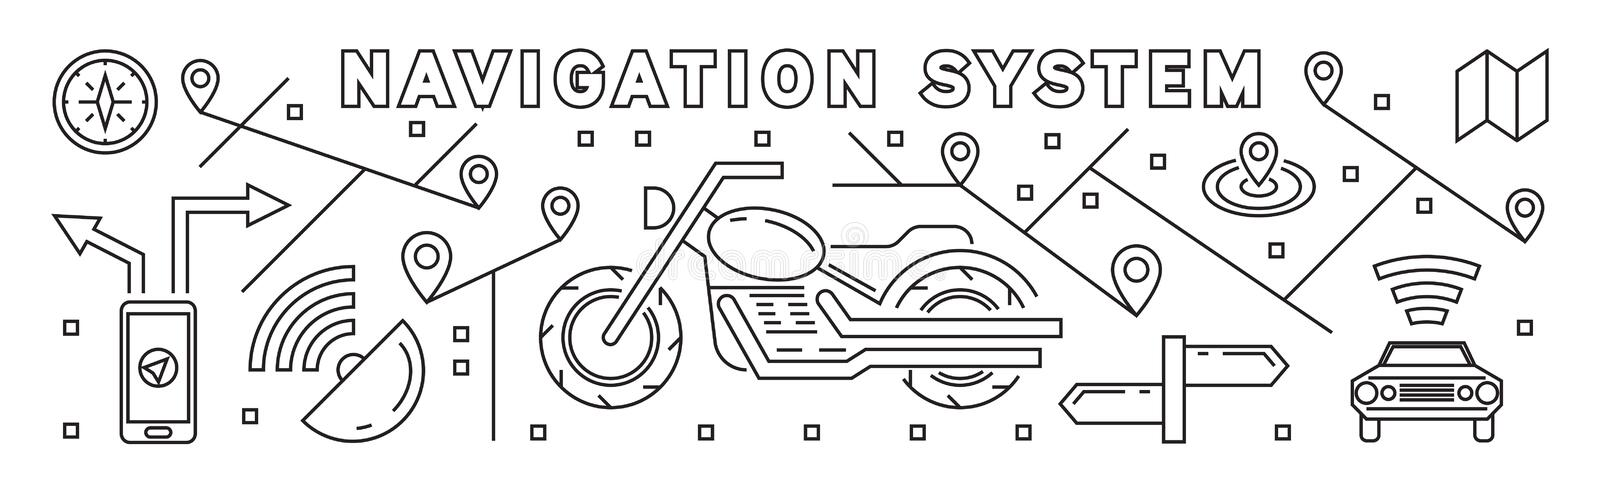 Navigation, Mapping, and Positioning System. Thin Line Design Concept. Thin Line Design Concept. Navigation, Mapping, and Positioning System vector illustration